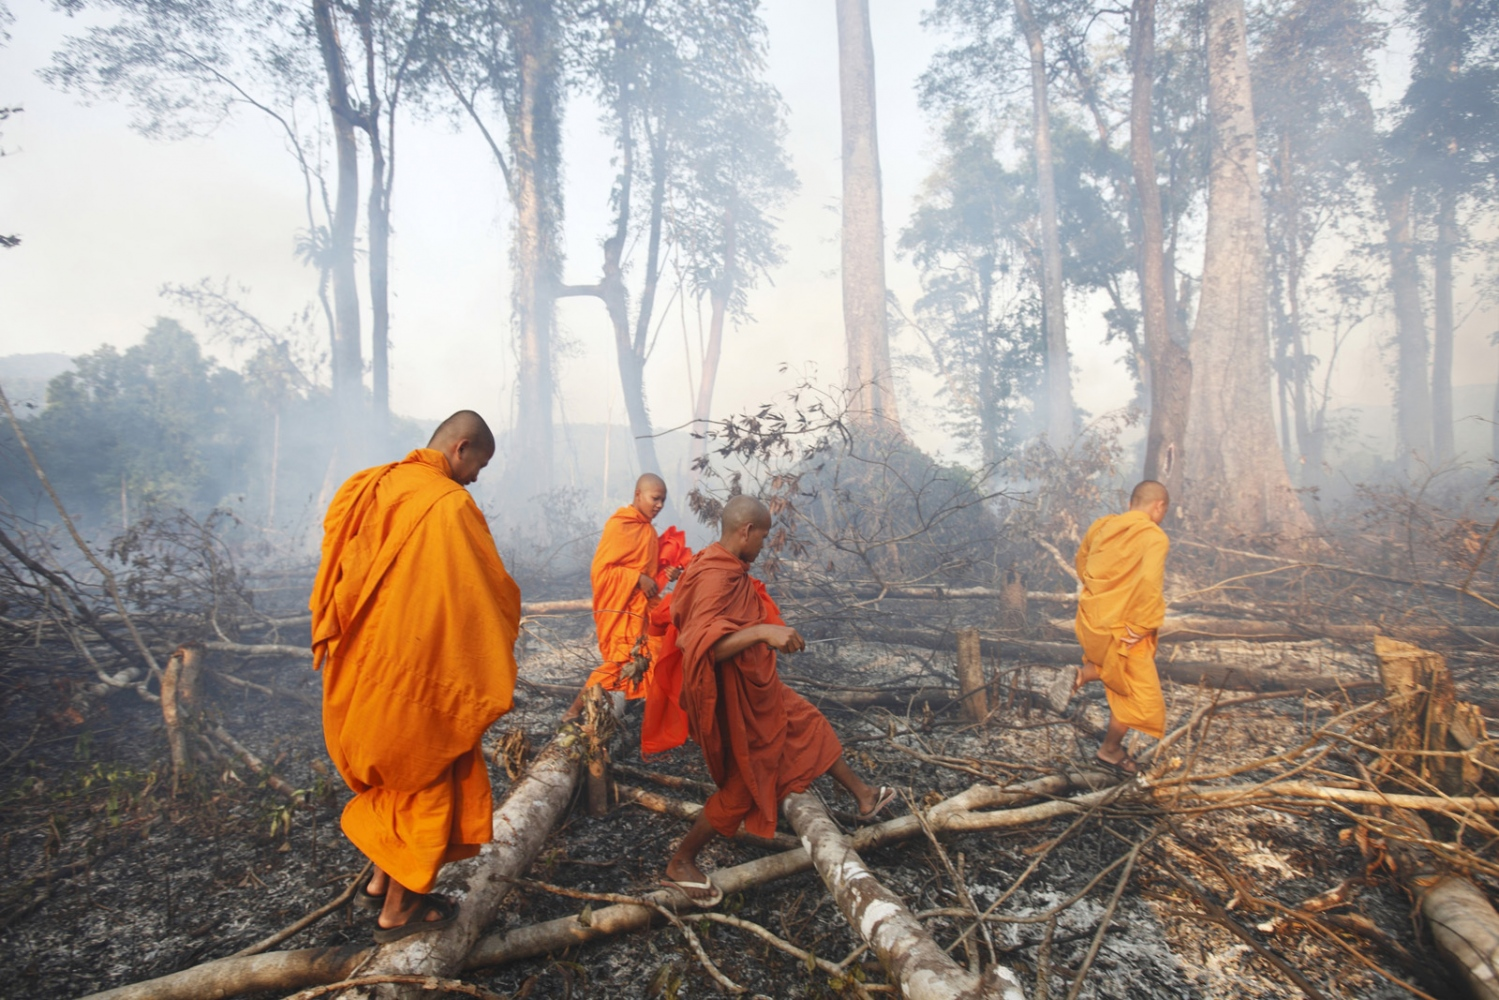 Cambodian Buddhist monks walk through a burning forest. Following uncontrolled forest destruction in the Central Cardamom Protected Forest (CCPF) an eco-warrior monk movement has begun whereby monks and villagers try to protect areas of forest by blessing trees to deter would-be loggers. This was the first tree ordination in a forest area on the edge of Ta Tay Leu village that has just been cleared to make-way for a banana plantation. Whilst they were too late to save the smaller trees they were able to bless and tie orange material around the remaining large trees.